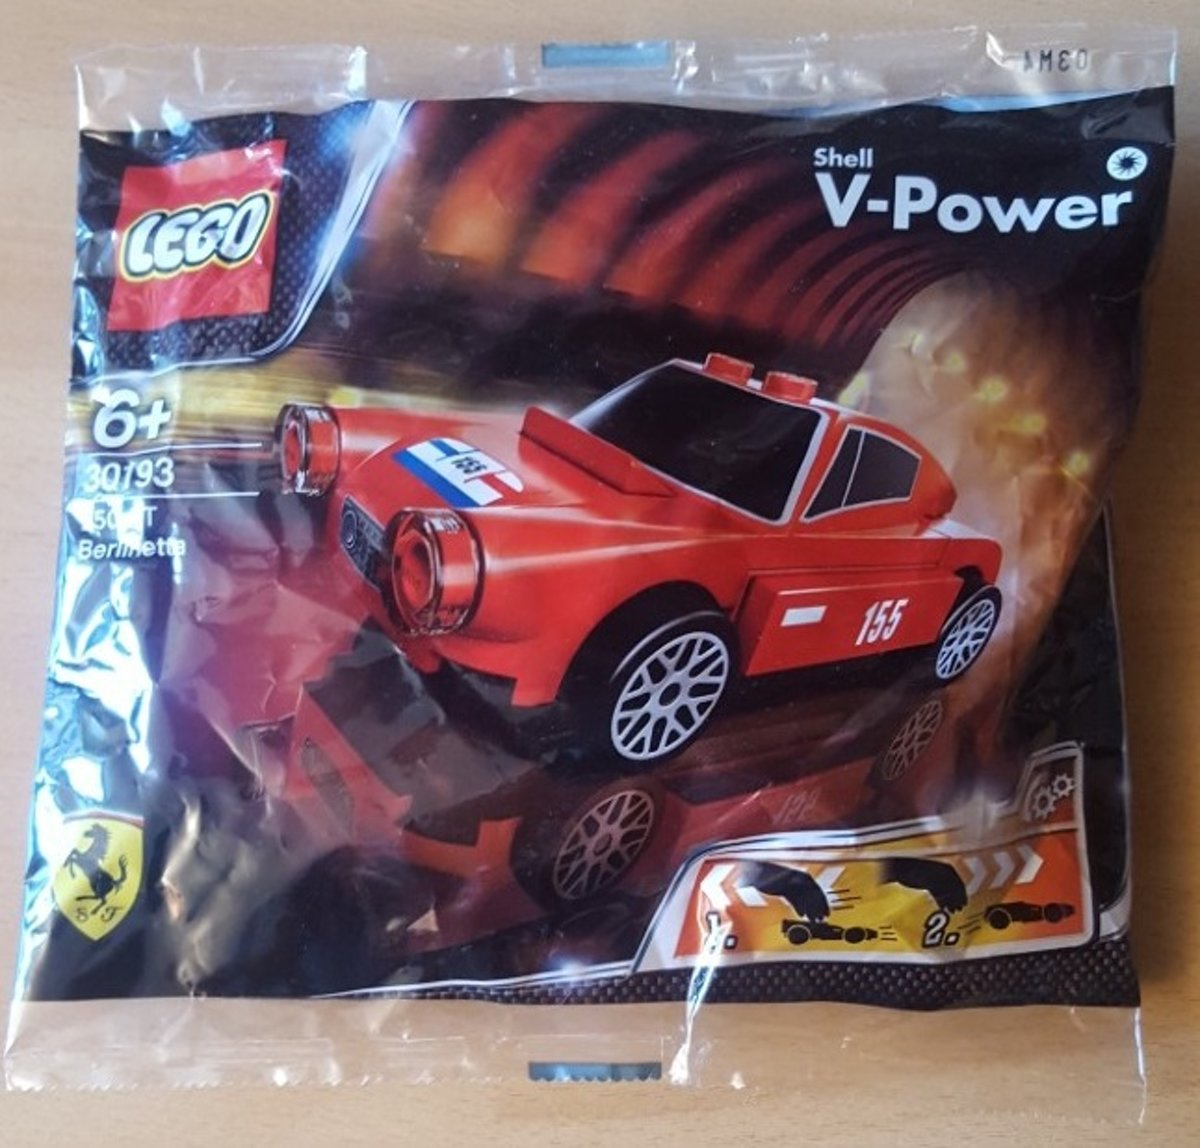 LEGO V-Power 30193 Ferrari 250 GT Berlinetta